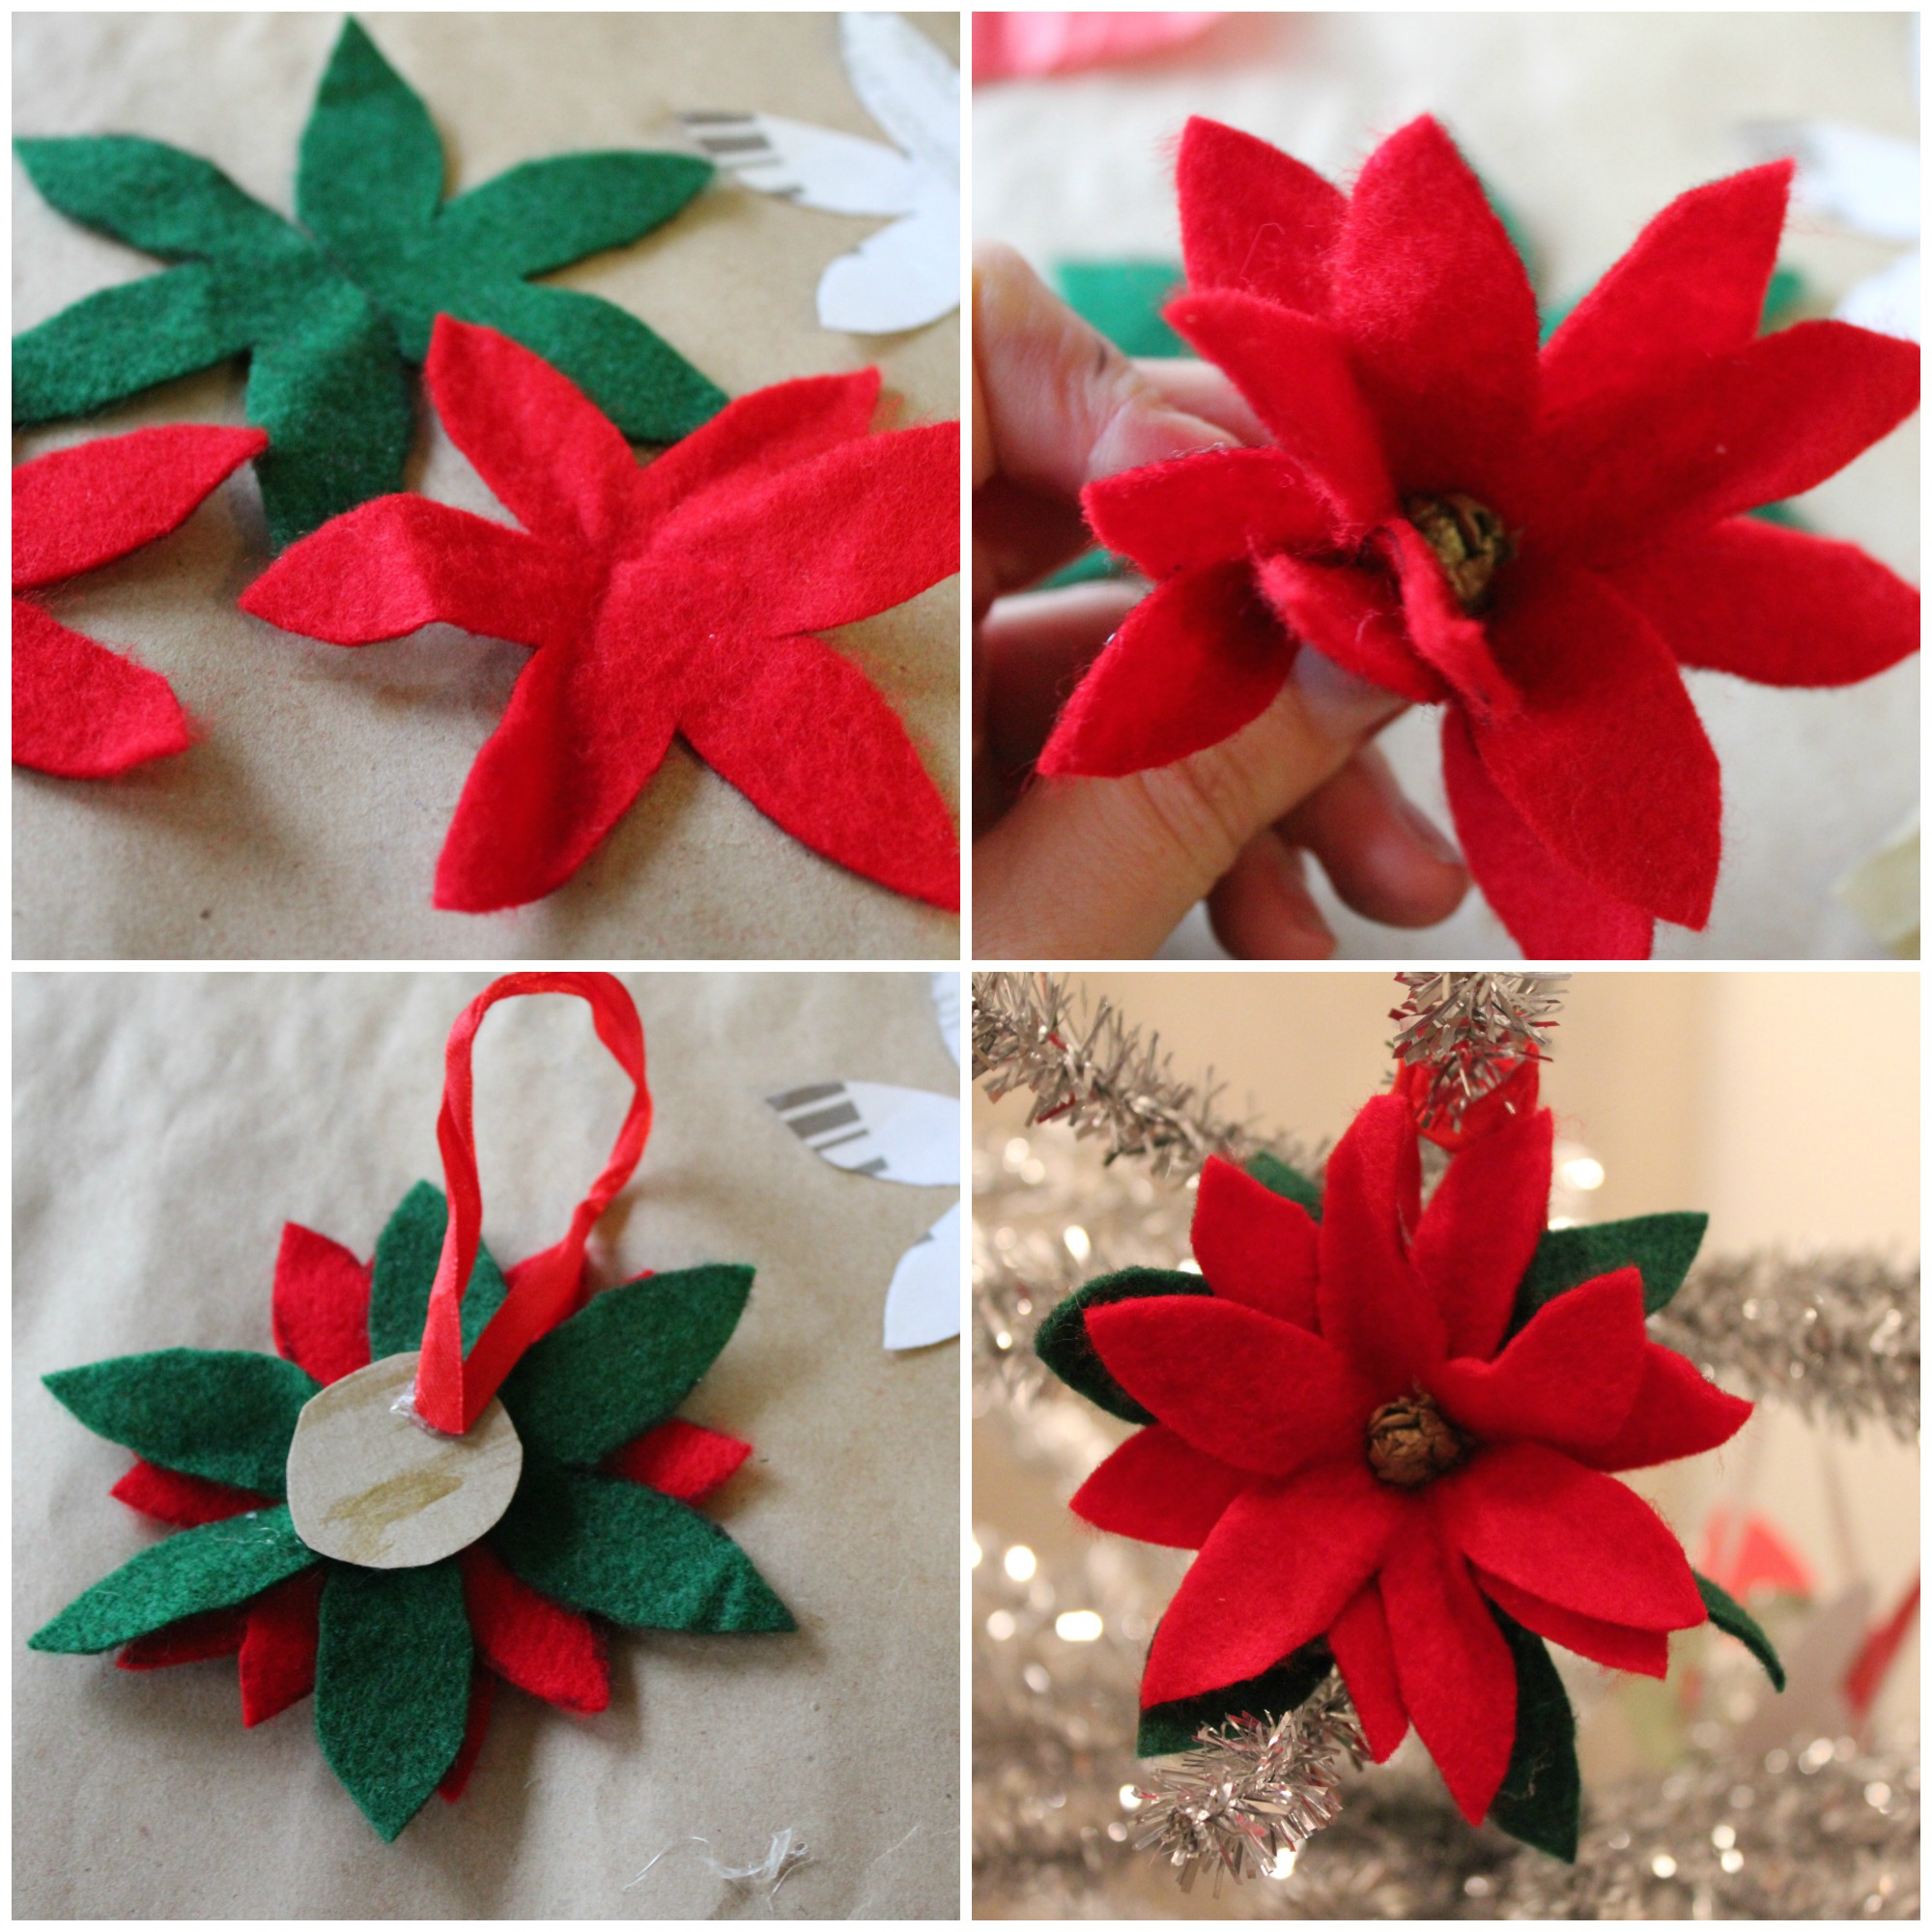 poinsetta ornament collage - Handmade Paper Christmas Decorations